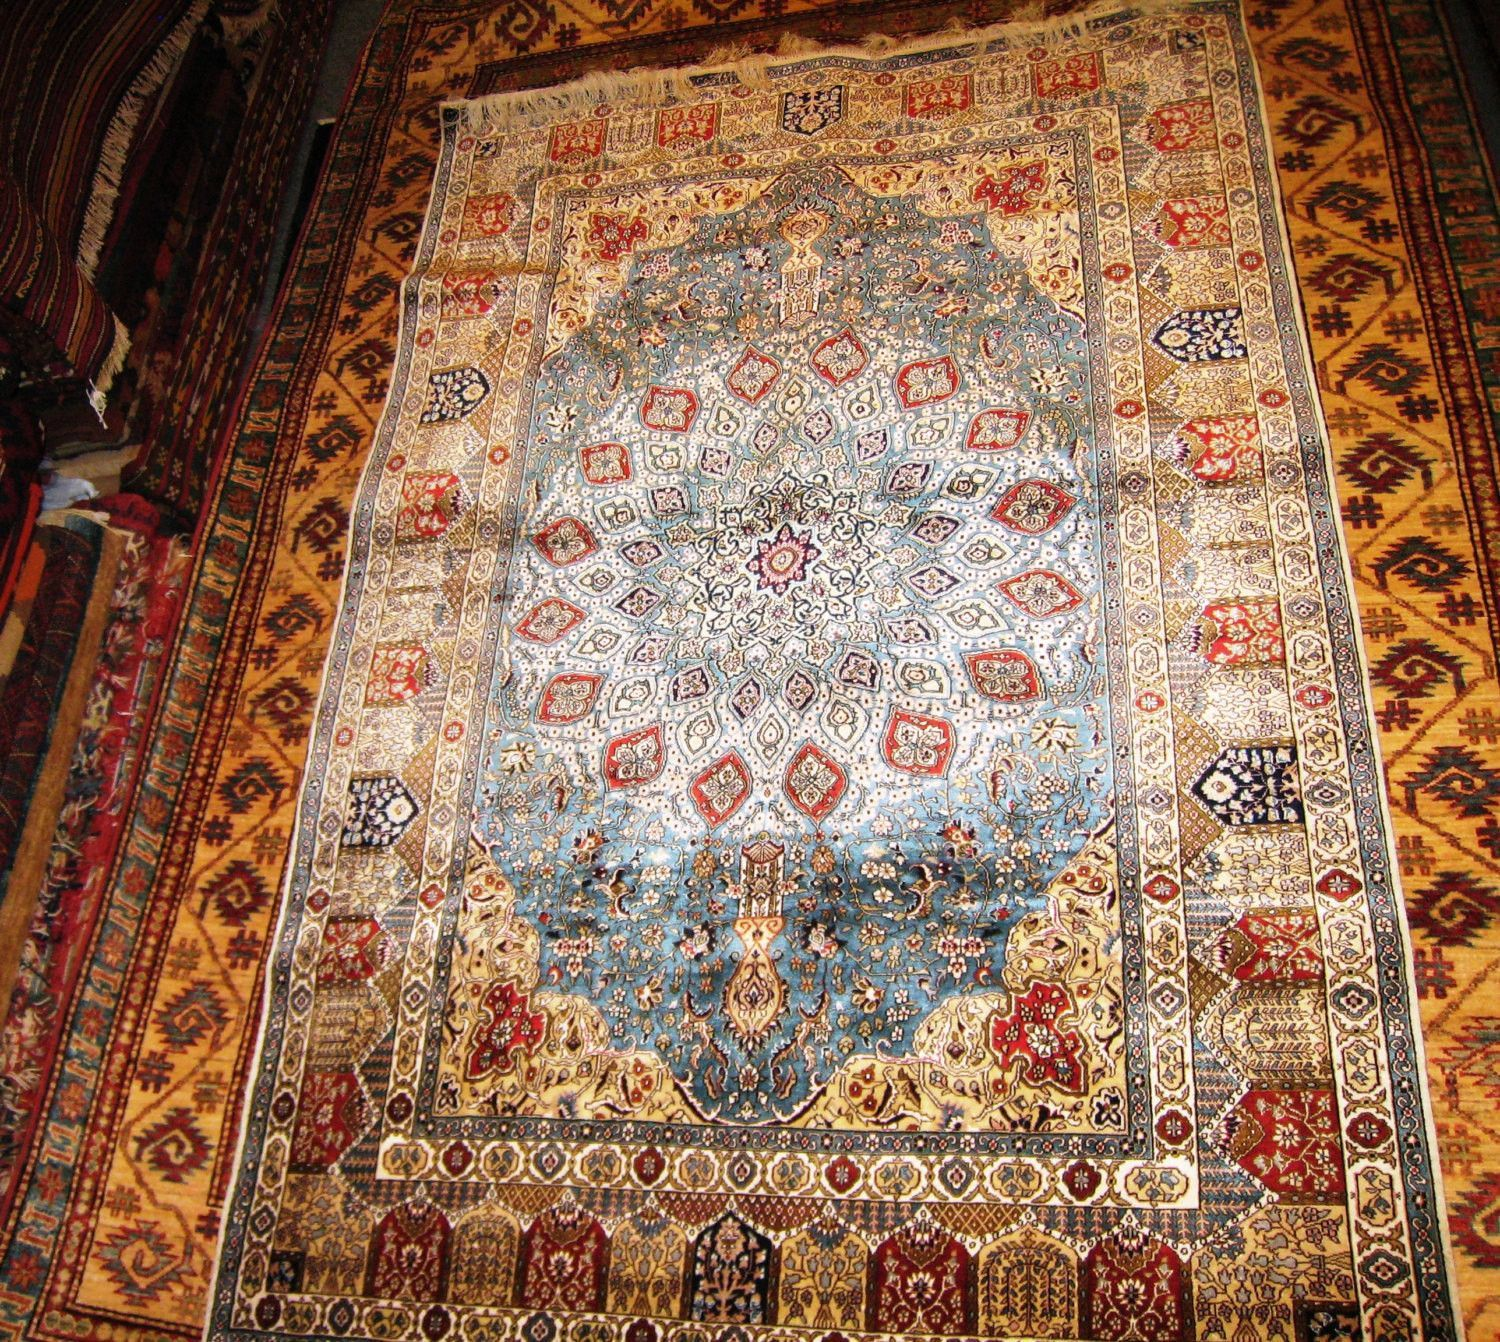 Persian Rugs From Iran: PERSIAN CARPET BEAUTIFUL Iran Iranian Rug Persia Qom 4x6